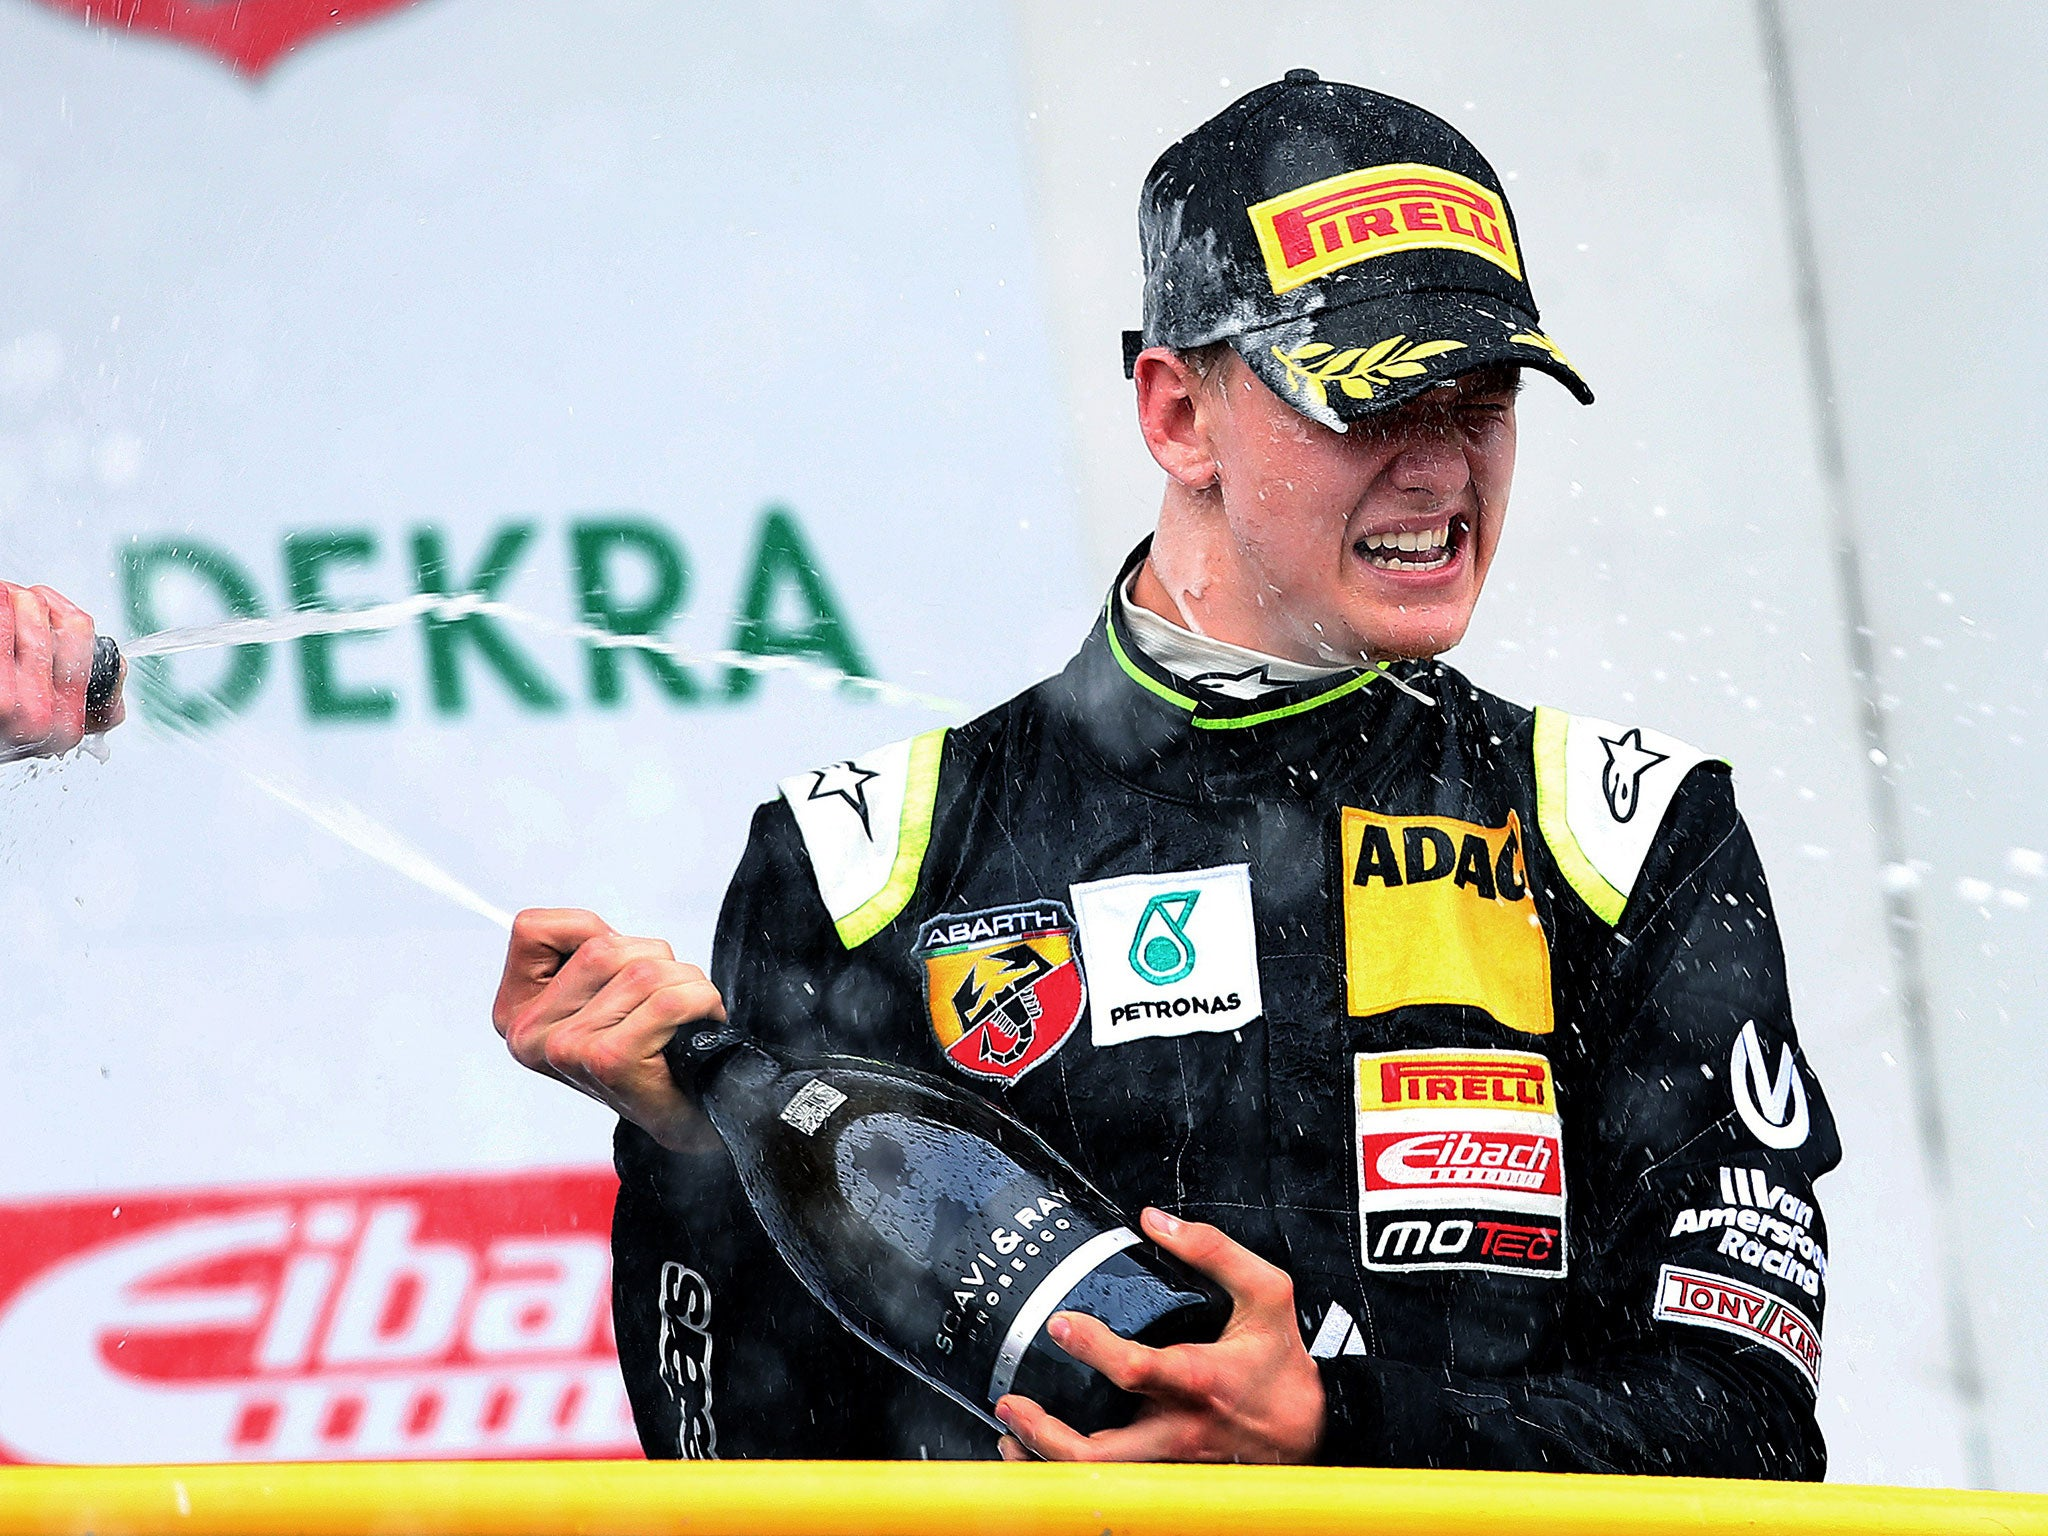 mick schumacher finishes ninth after starting 19th as son of michael schumacher makes his adac. Black Bedroom Furniture Sets. Home Design Ideas